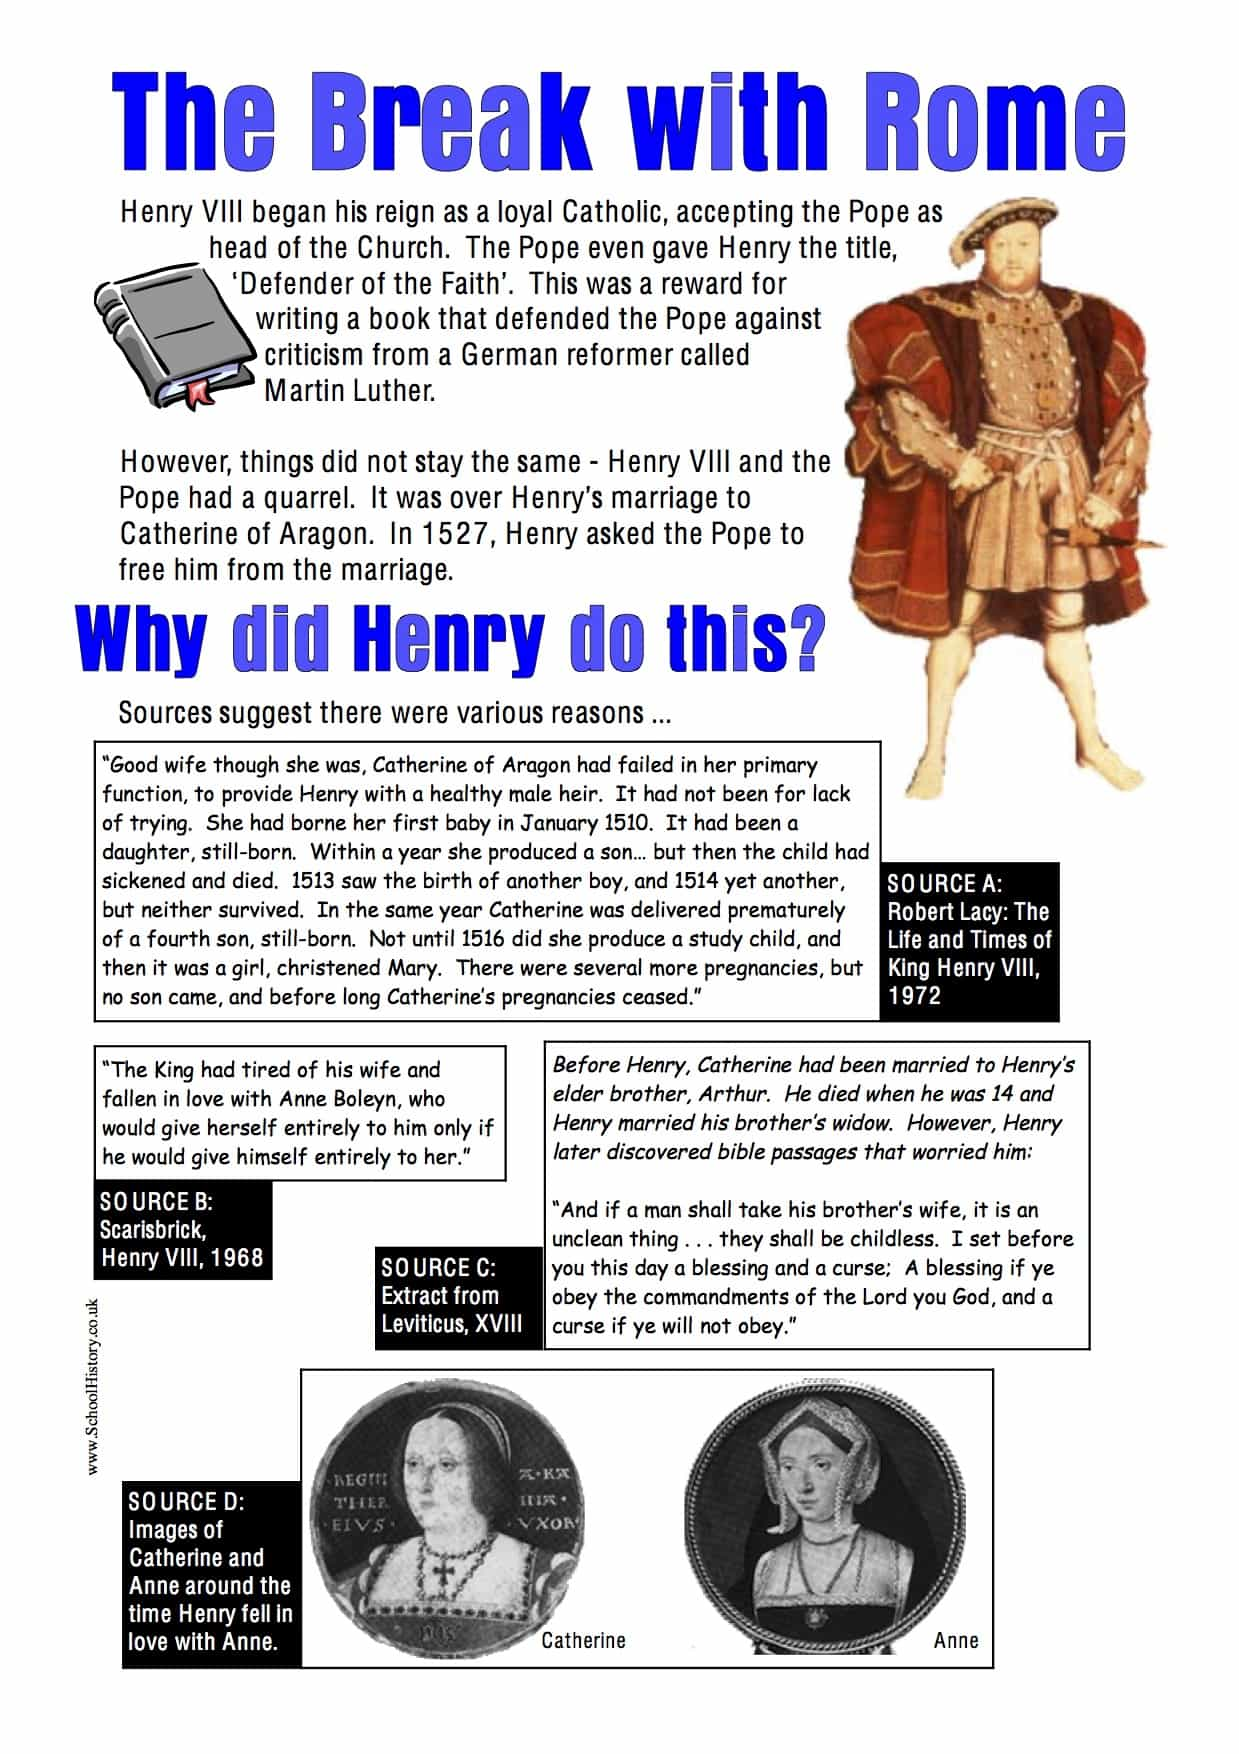 Henry Viii And The Break With Rome Worksheet